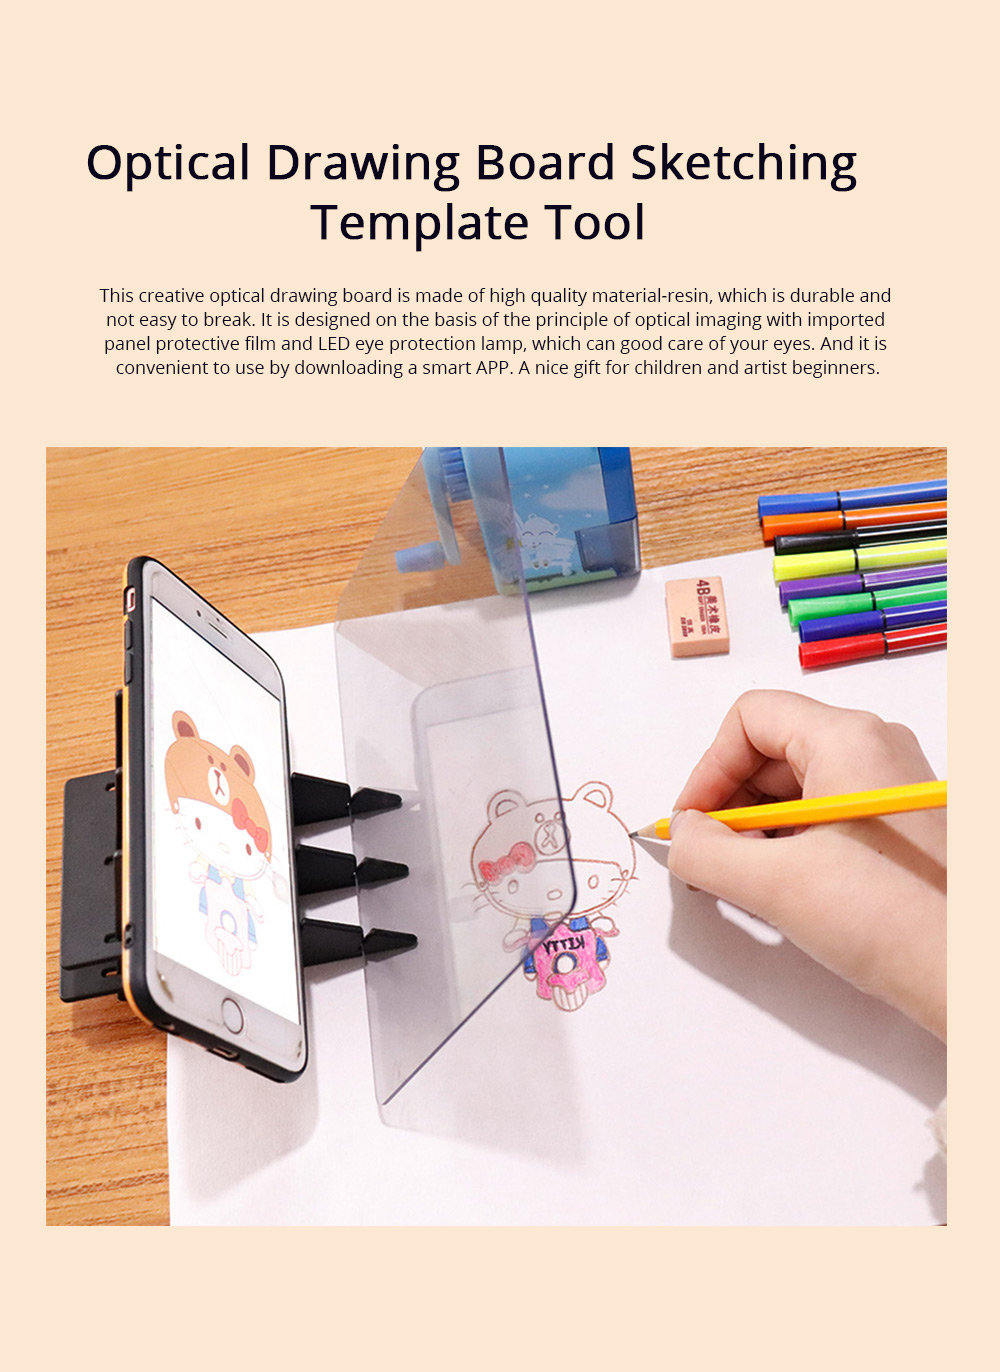 Optical Drawing Board Adjustable Brightness Portable Sketching Template Tool Image Projection Board for Artists Beginners 0